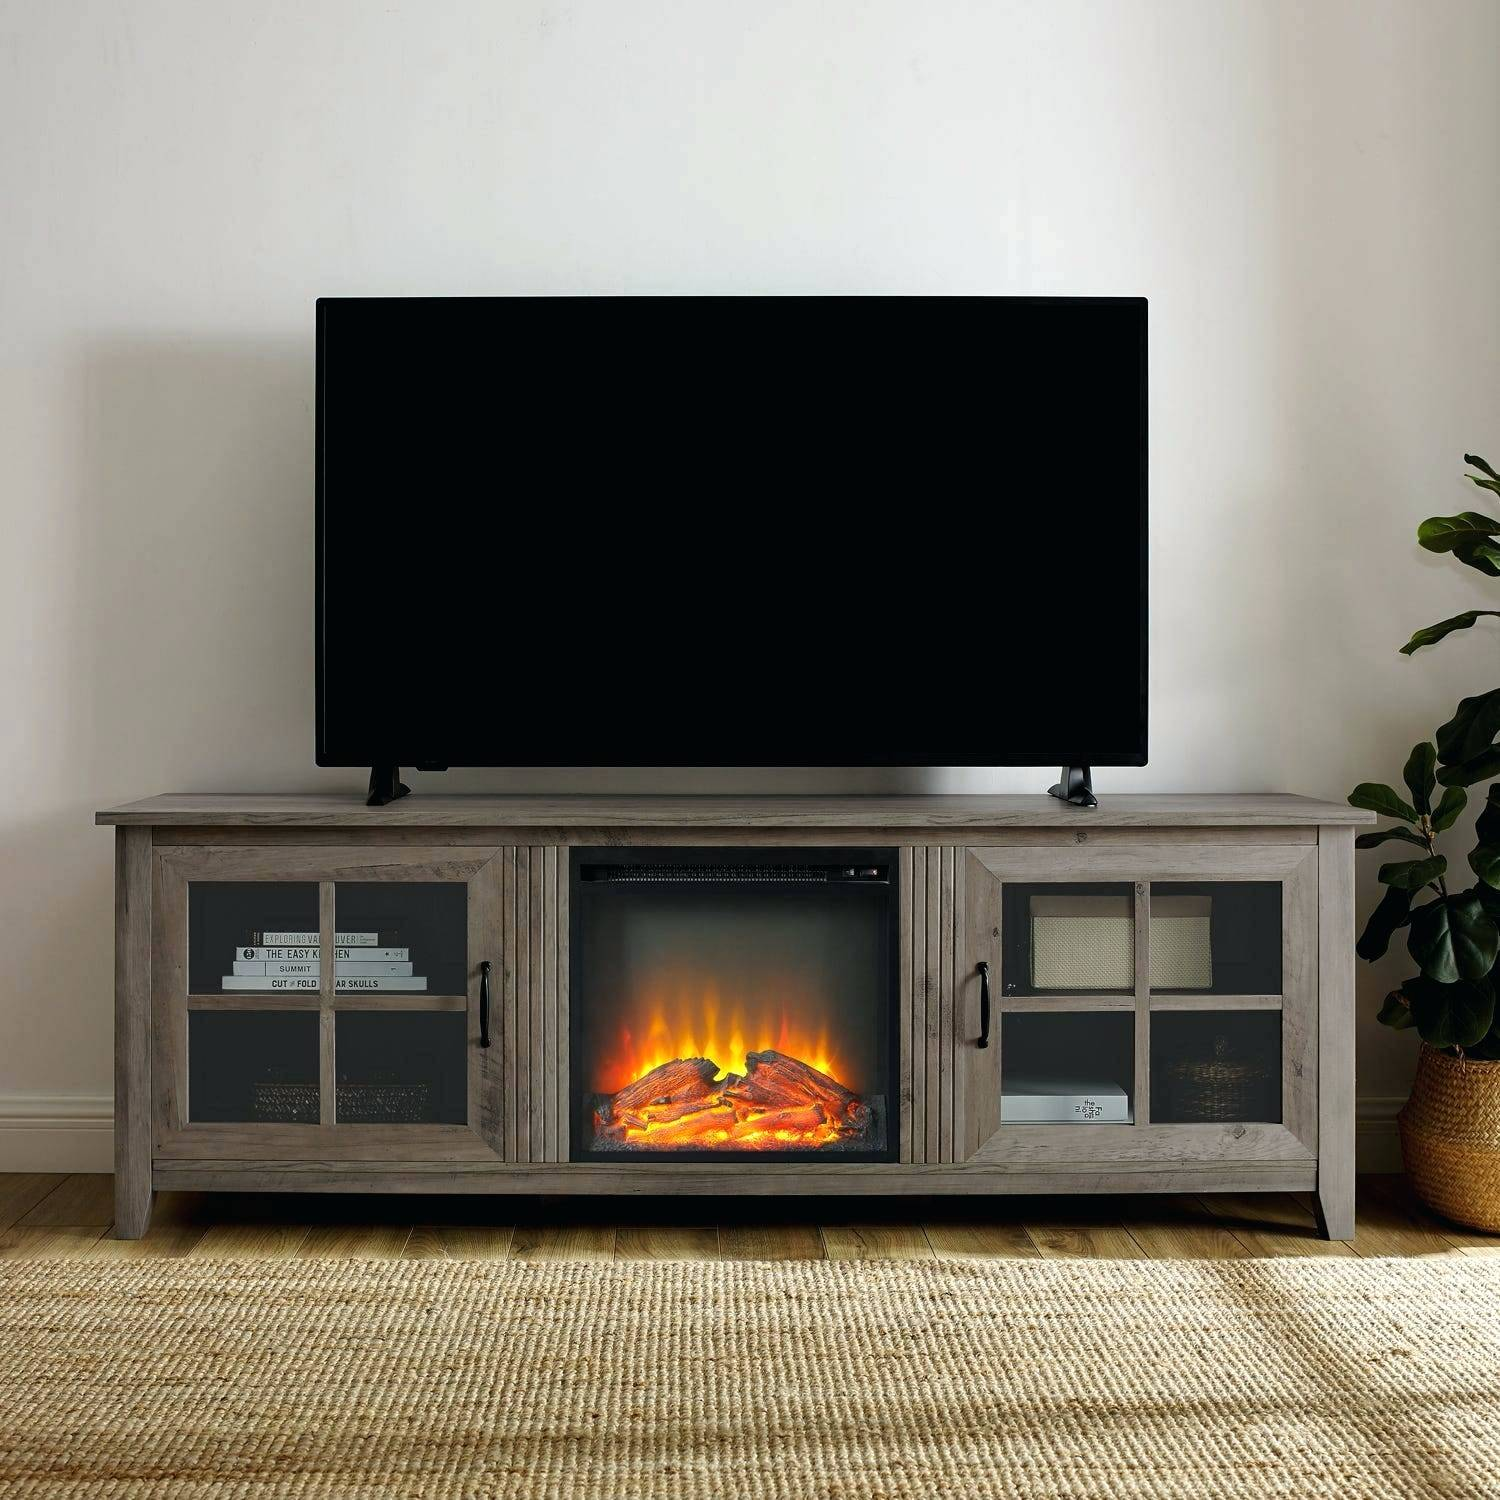 70 fireplace tv stand walmart fireplace tv stand 70 inch edenfield 70 in freestanding infrared electric fireplace tv stand in espresso